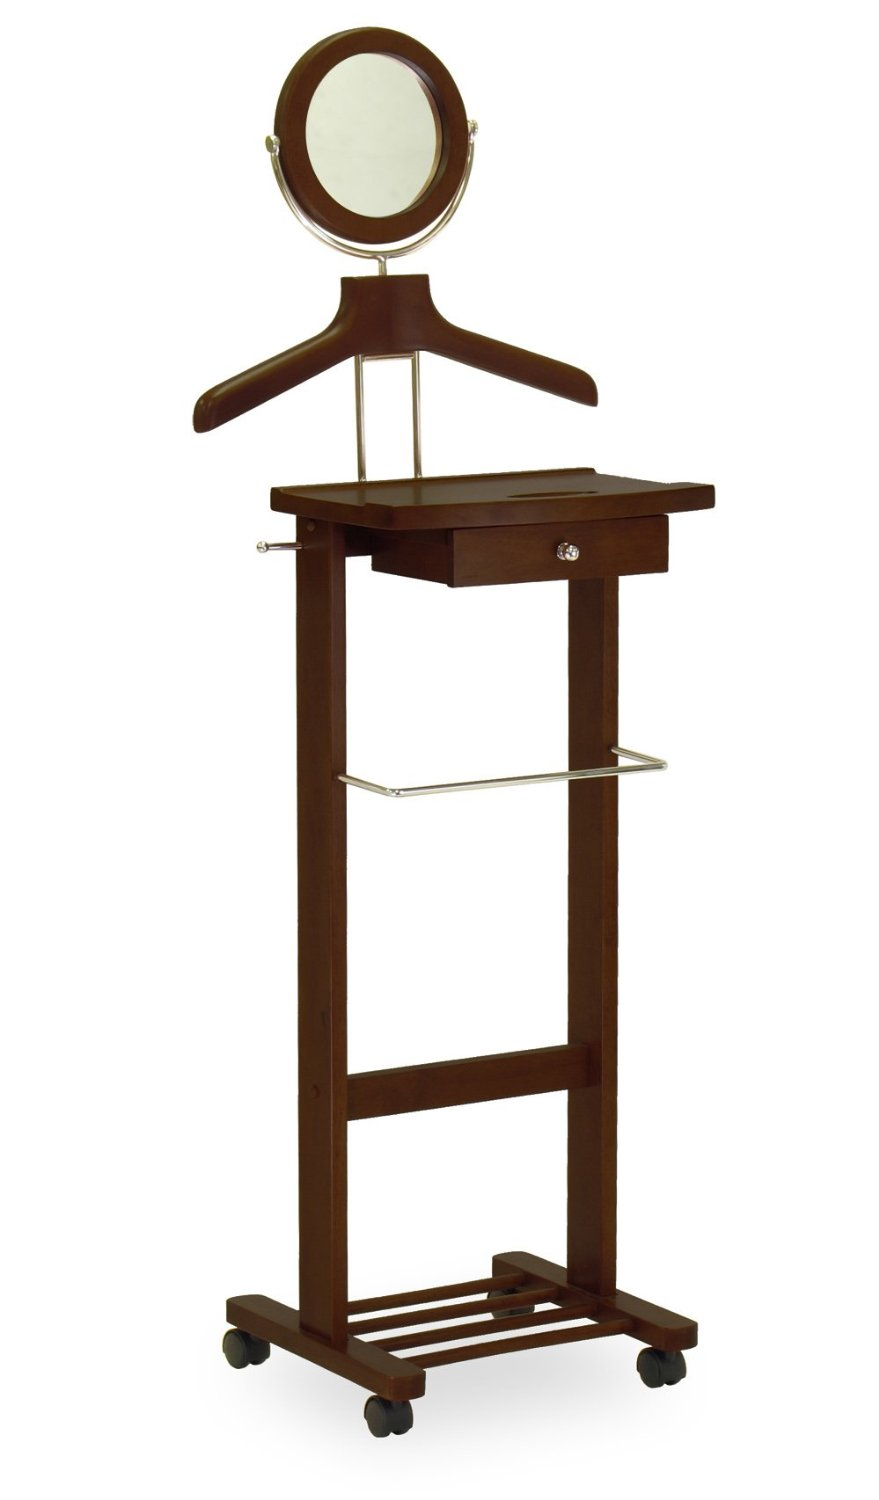 Valet Stand With Mirror, Drawer, Tie Hook, Casters - Pot Racks Plus